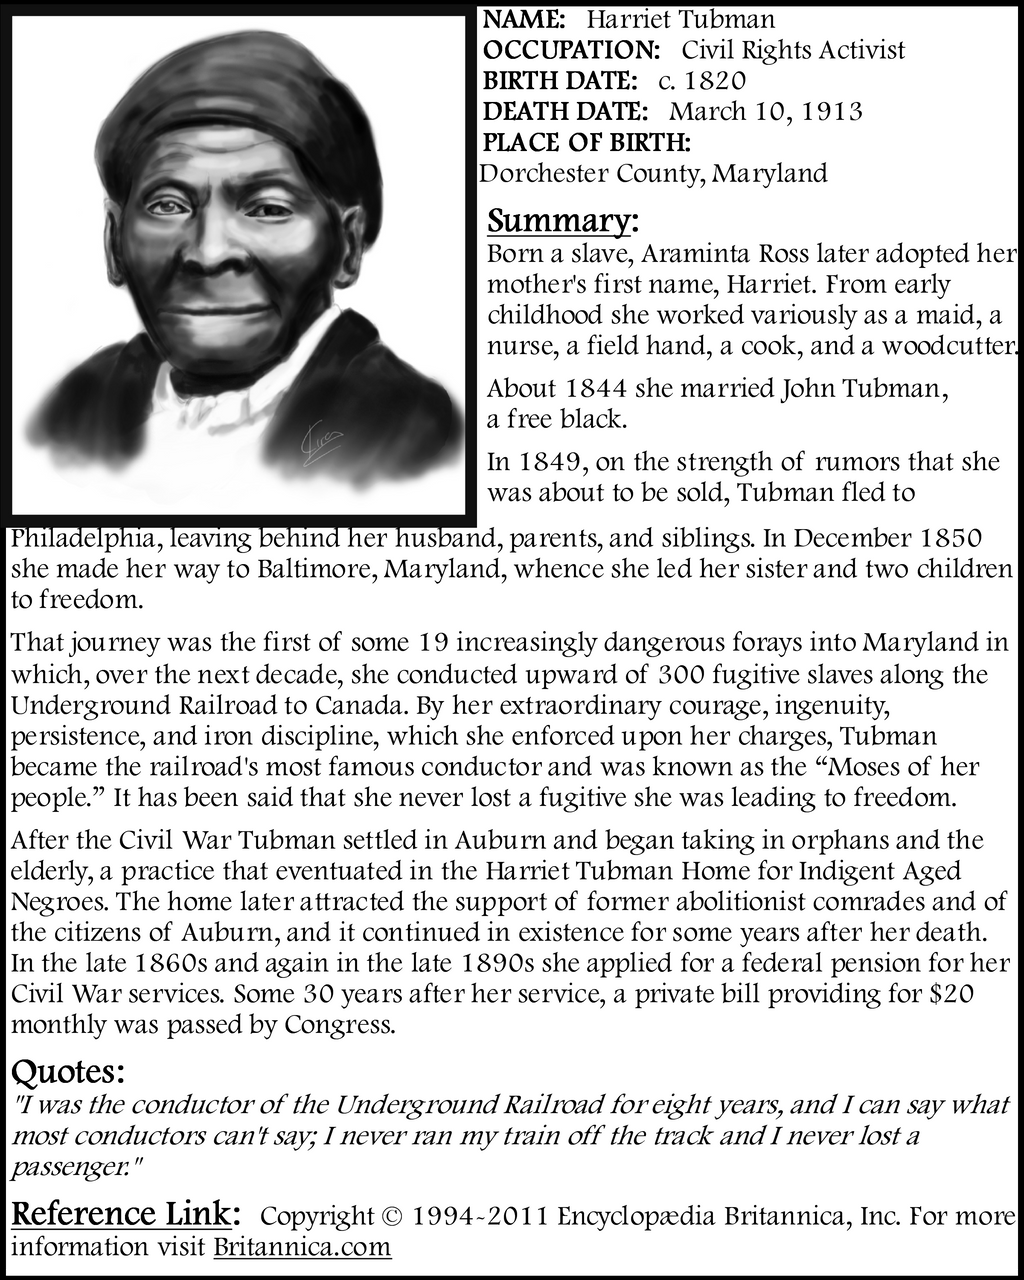 harriet tubmans life and accomplishments essay Pablo picasso essay template brazil & usa cultures buy a well-written essay example life of pi harriet tubman harriet tubman is known for first name as harriet.